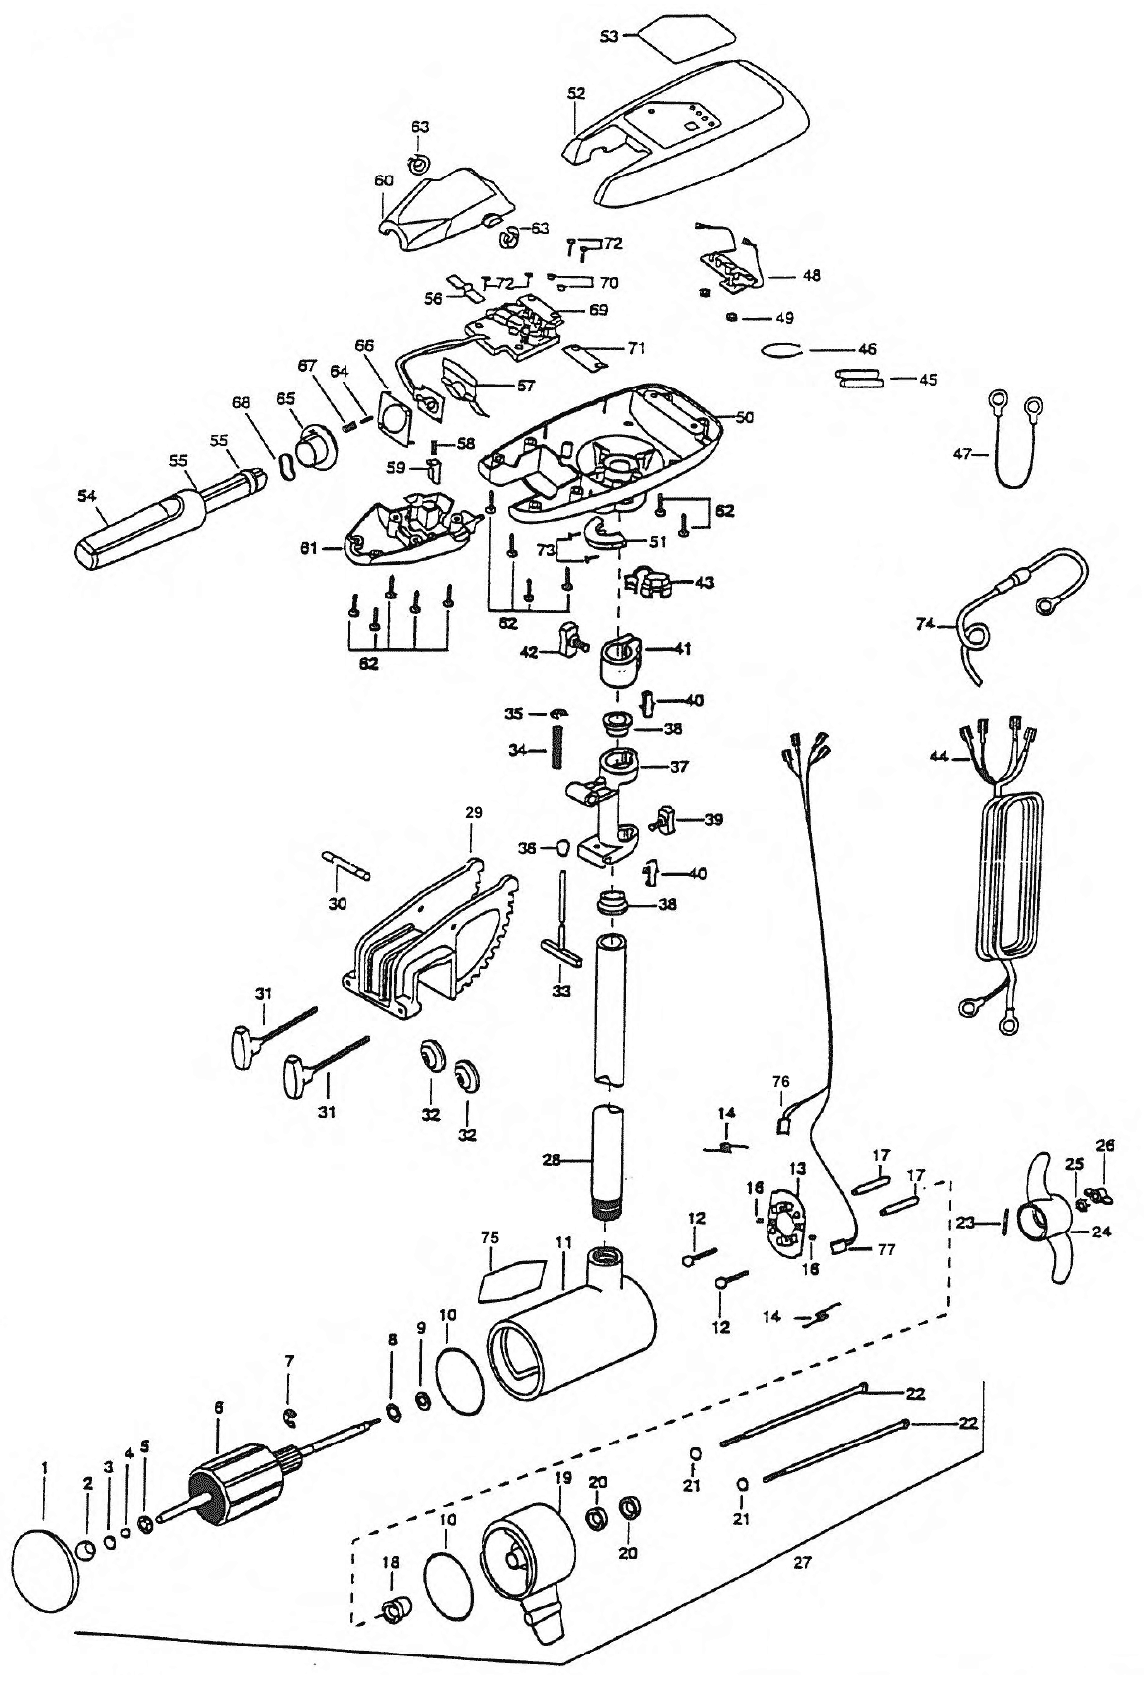 Minn Kota Diagram Trolling Parts as well 13518 in addition T14942766 Need wiring diagram old silvertrol also Minn Kota Motors Schematics as well 36 Volt Minn Kota Wiring Diagram. on wiring 24 volt trolling motor